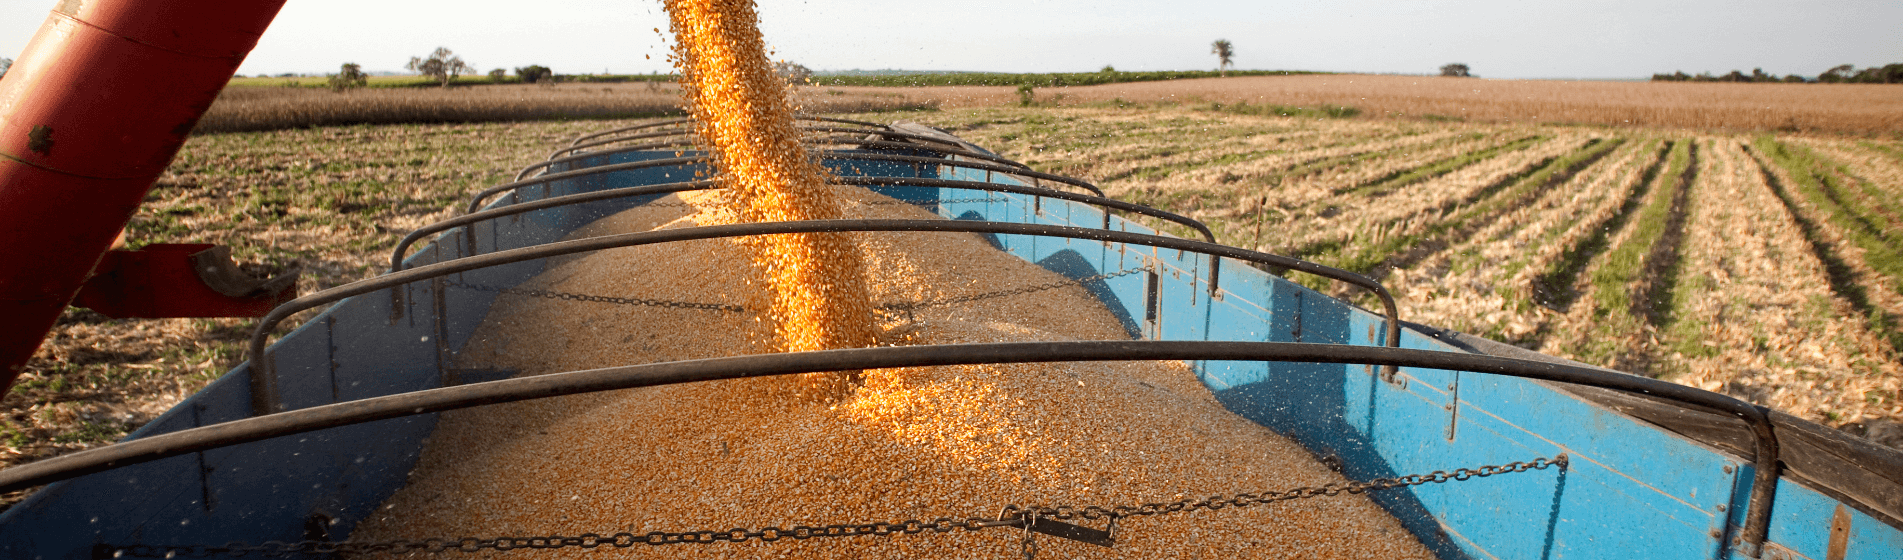 Buying farmland in Paraguay, Uruguay, and Brazil